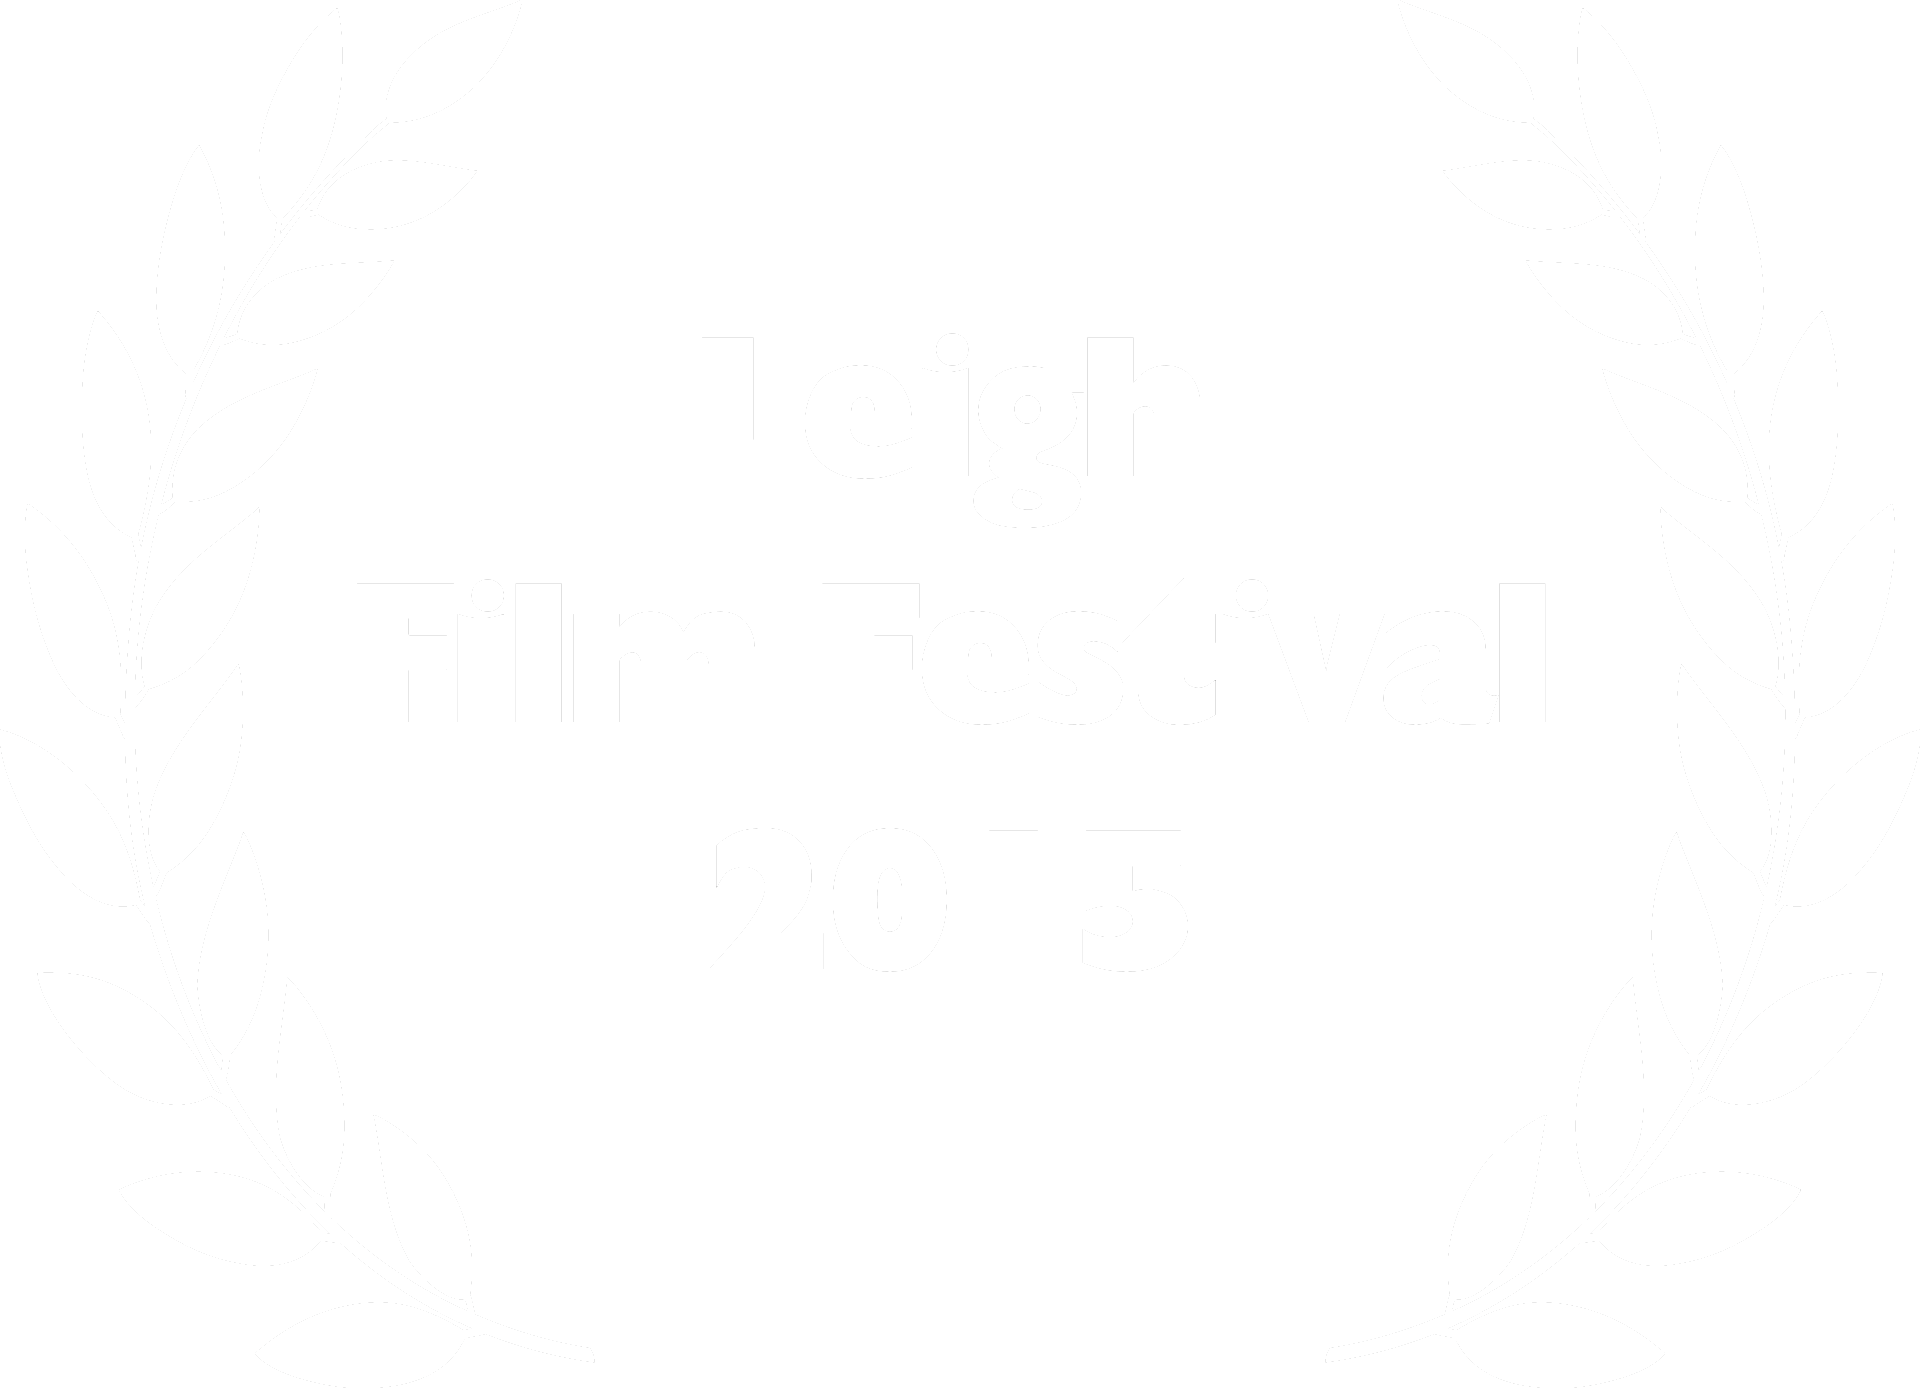 white_Film_Festival_Laurel_Leaves.png